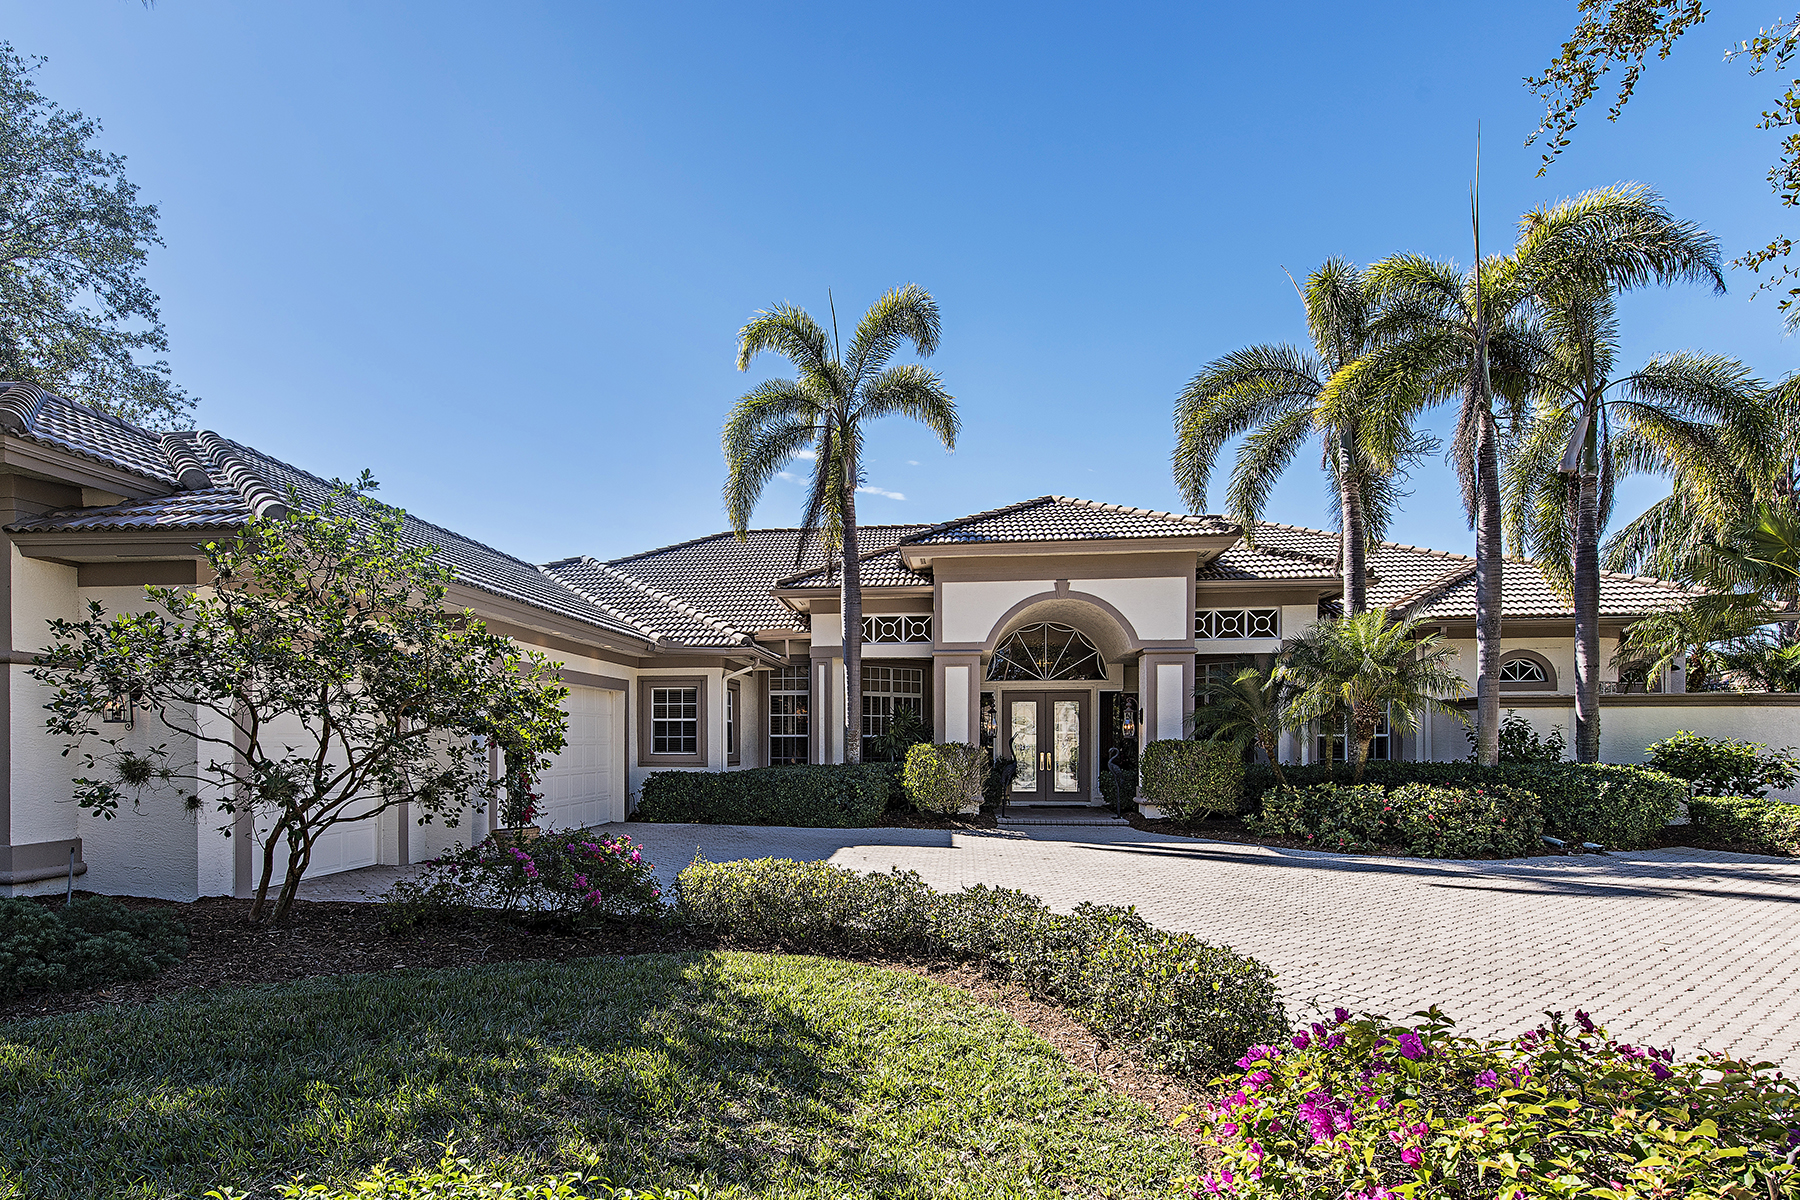 Single Family Home for Sale at Arbors at Pelican Marsh 1376 Wood Duck Trl, Naples, Florida 34108 United States